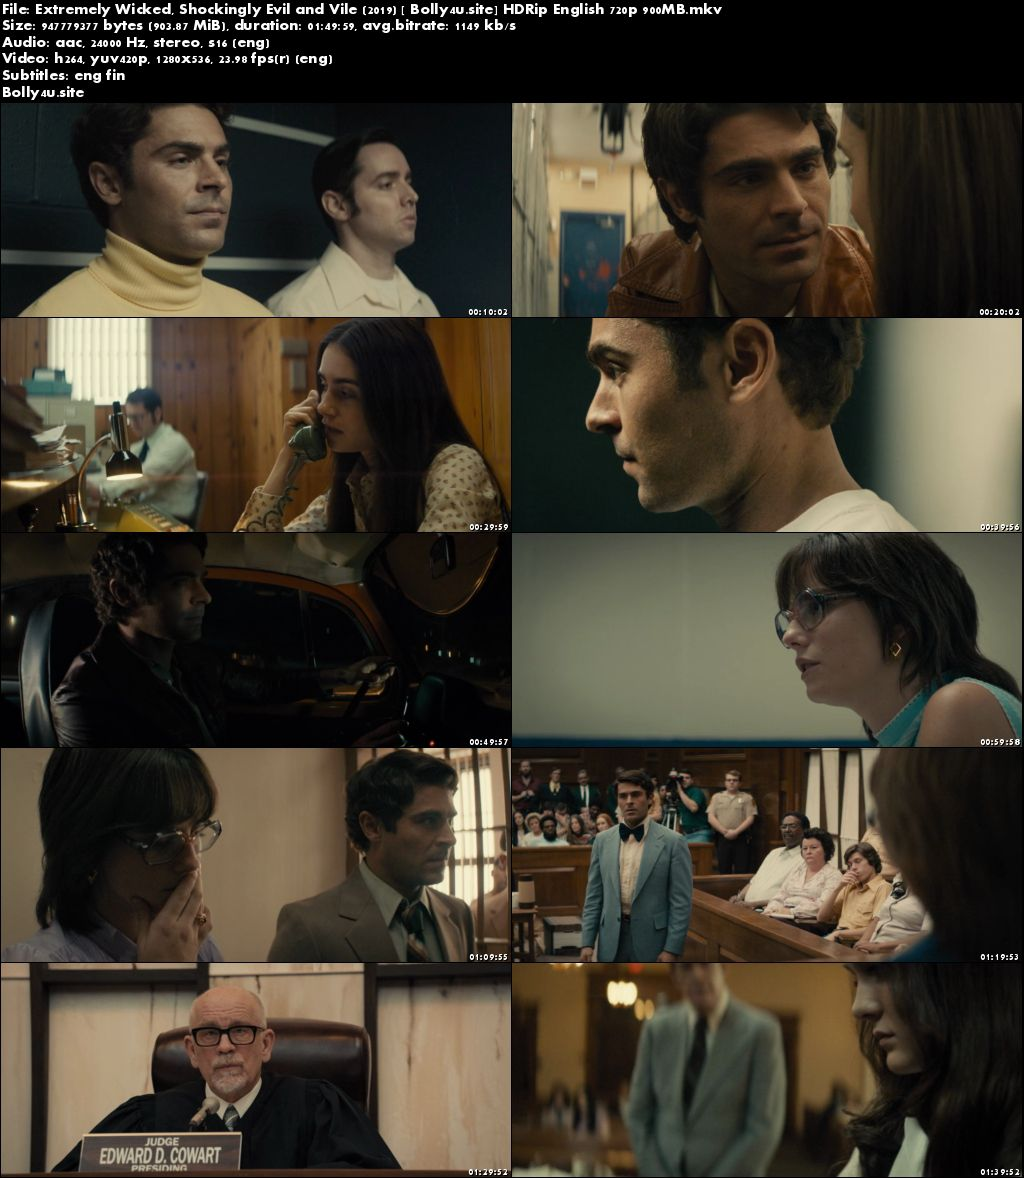 Extremely Wicked Shockingly Evil and Vile 2019 HDRip 900MB English 720p ESub Download